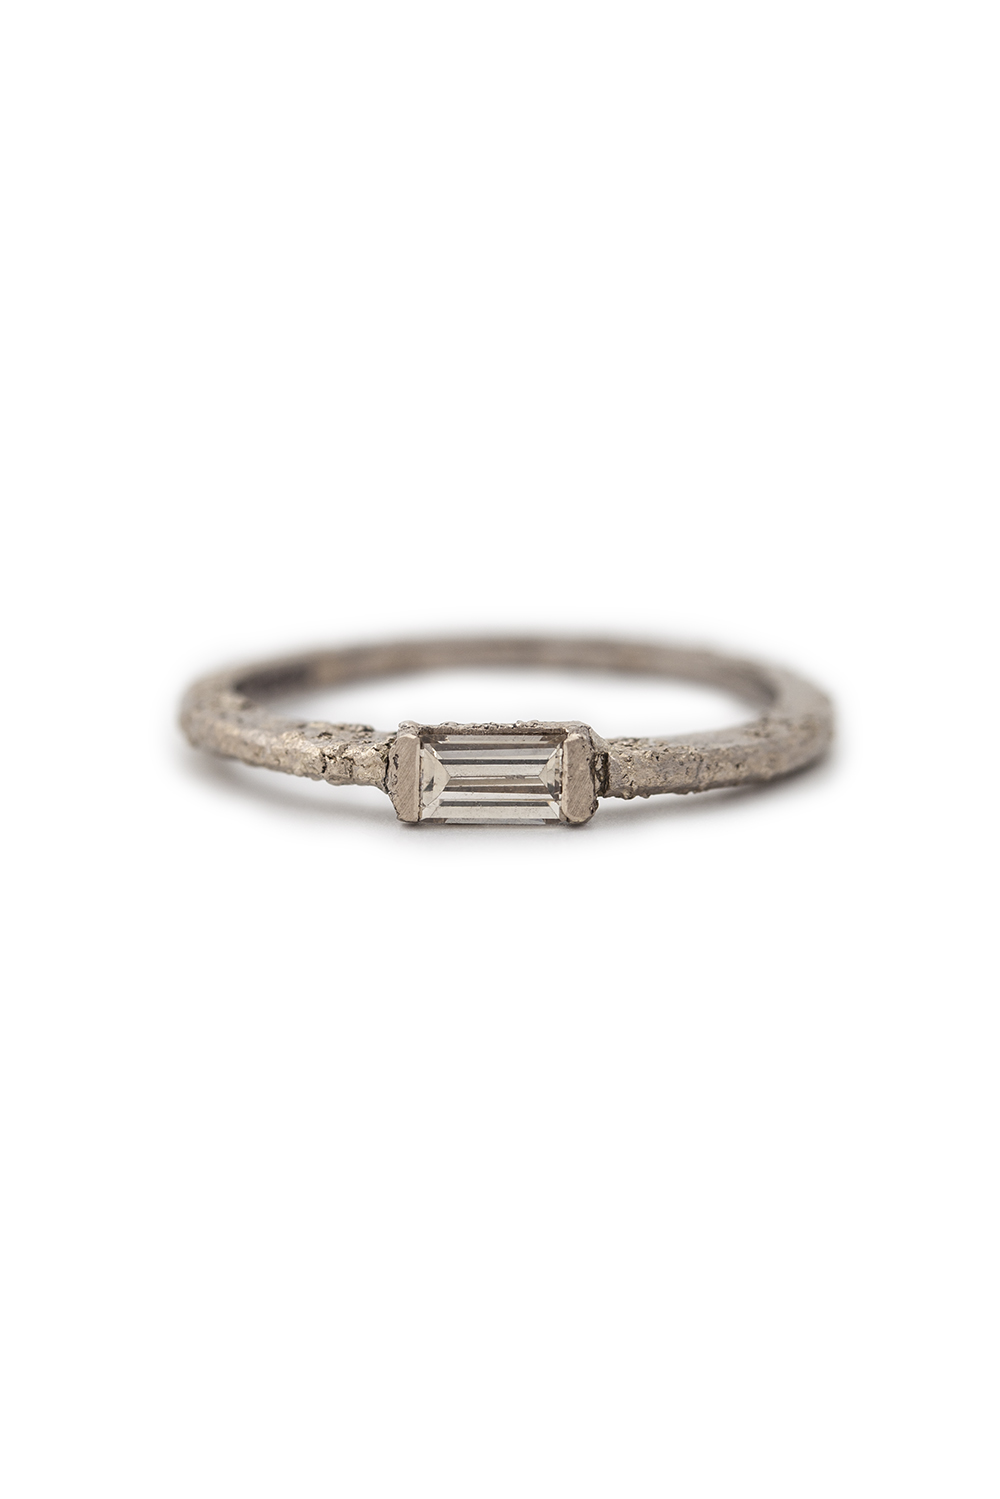 Baguette brilliant cut diamond in white gold